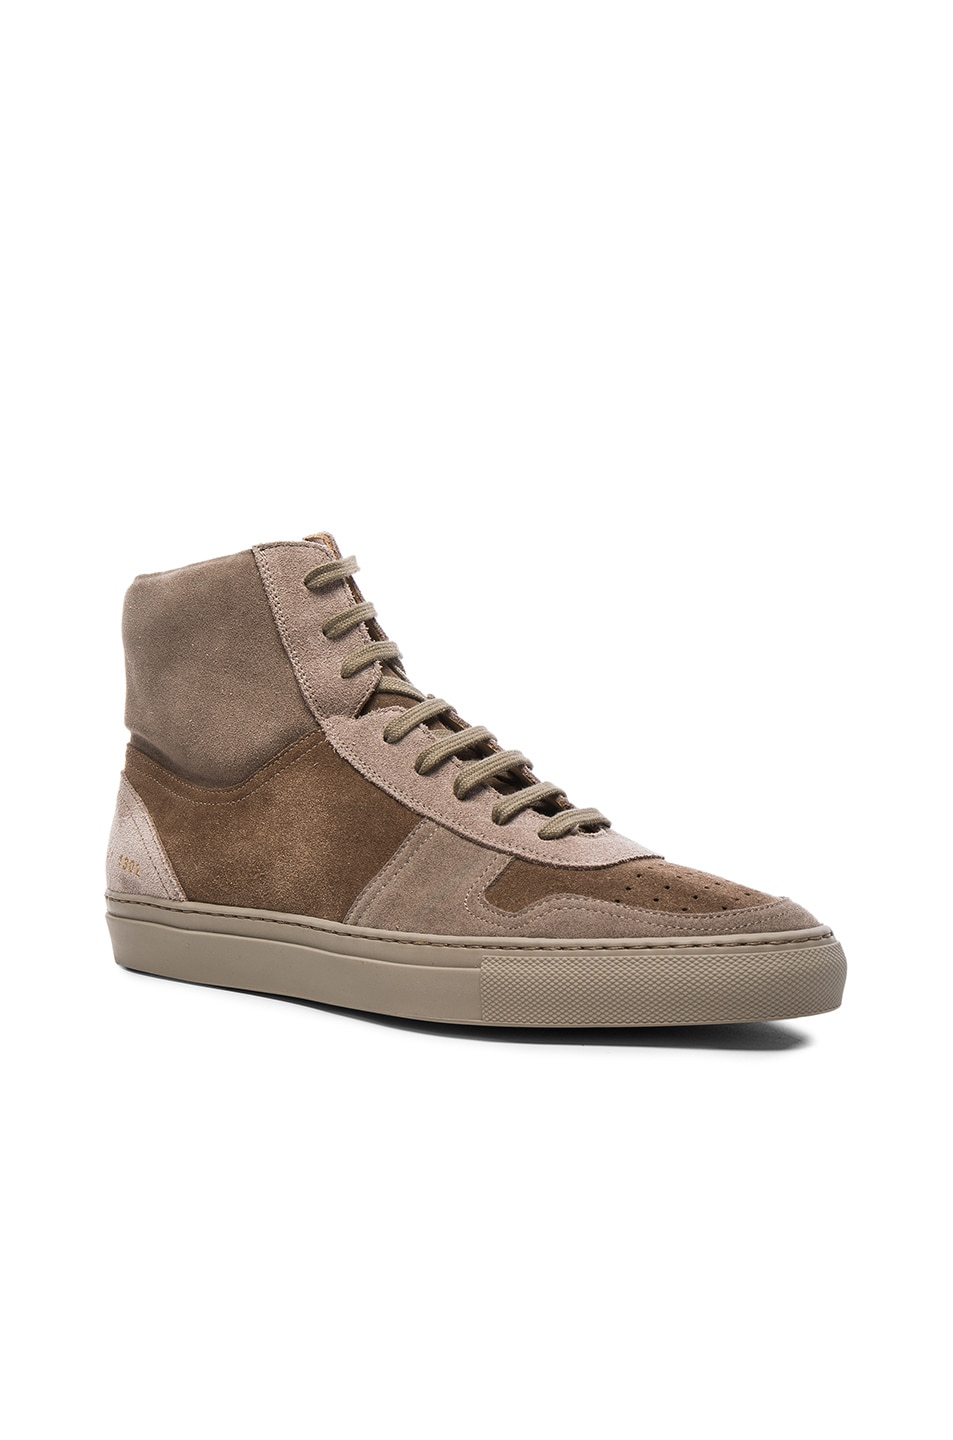 554e3bf27e8f5b Image 1 of Robert Geller x Common Projects Suede High Top Sneakers in Taupe